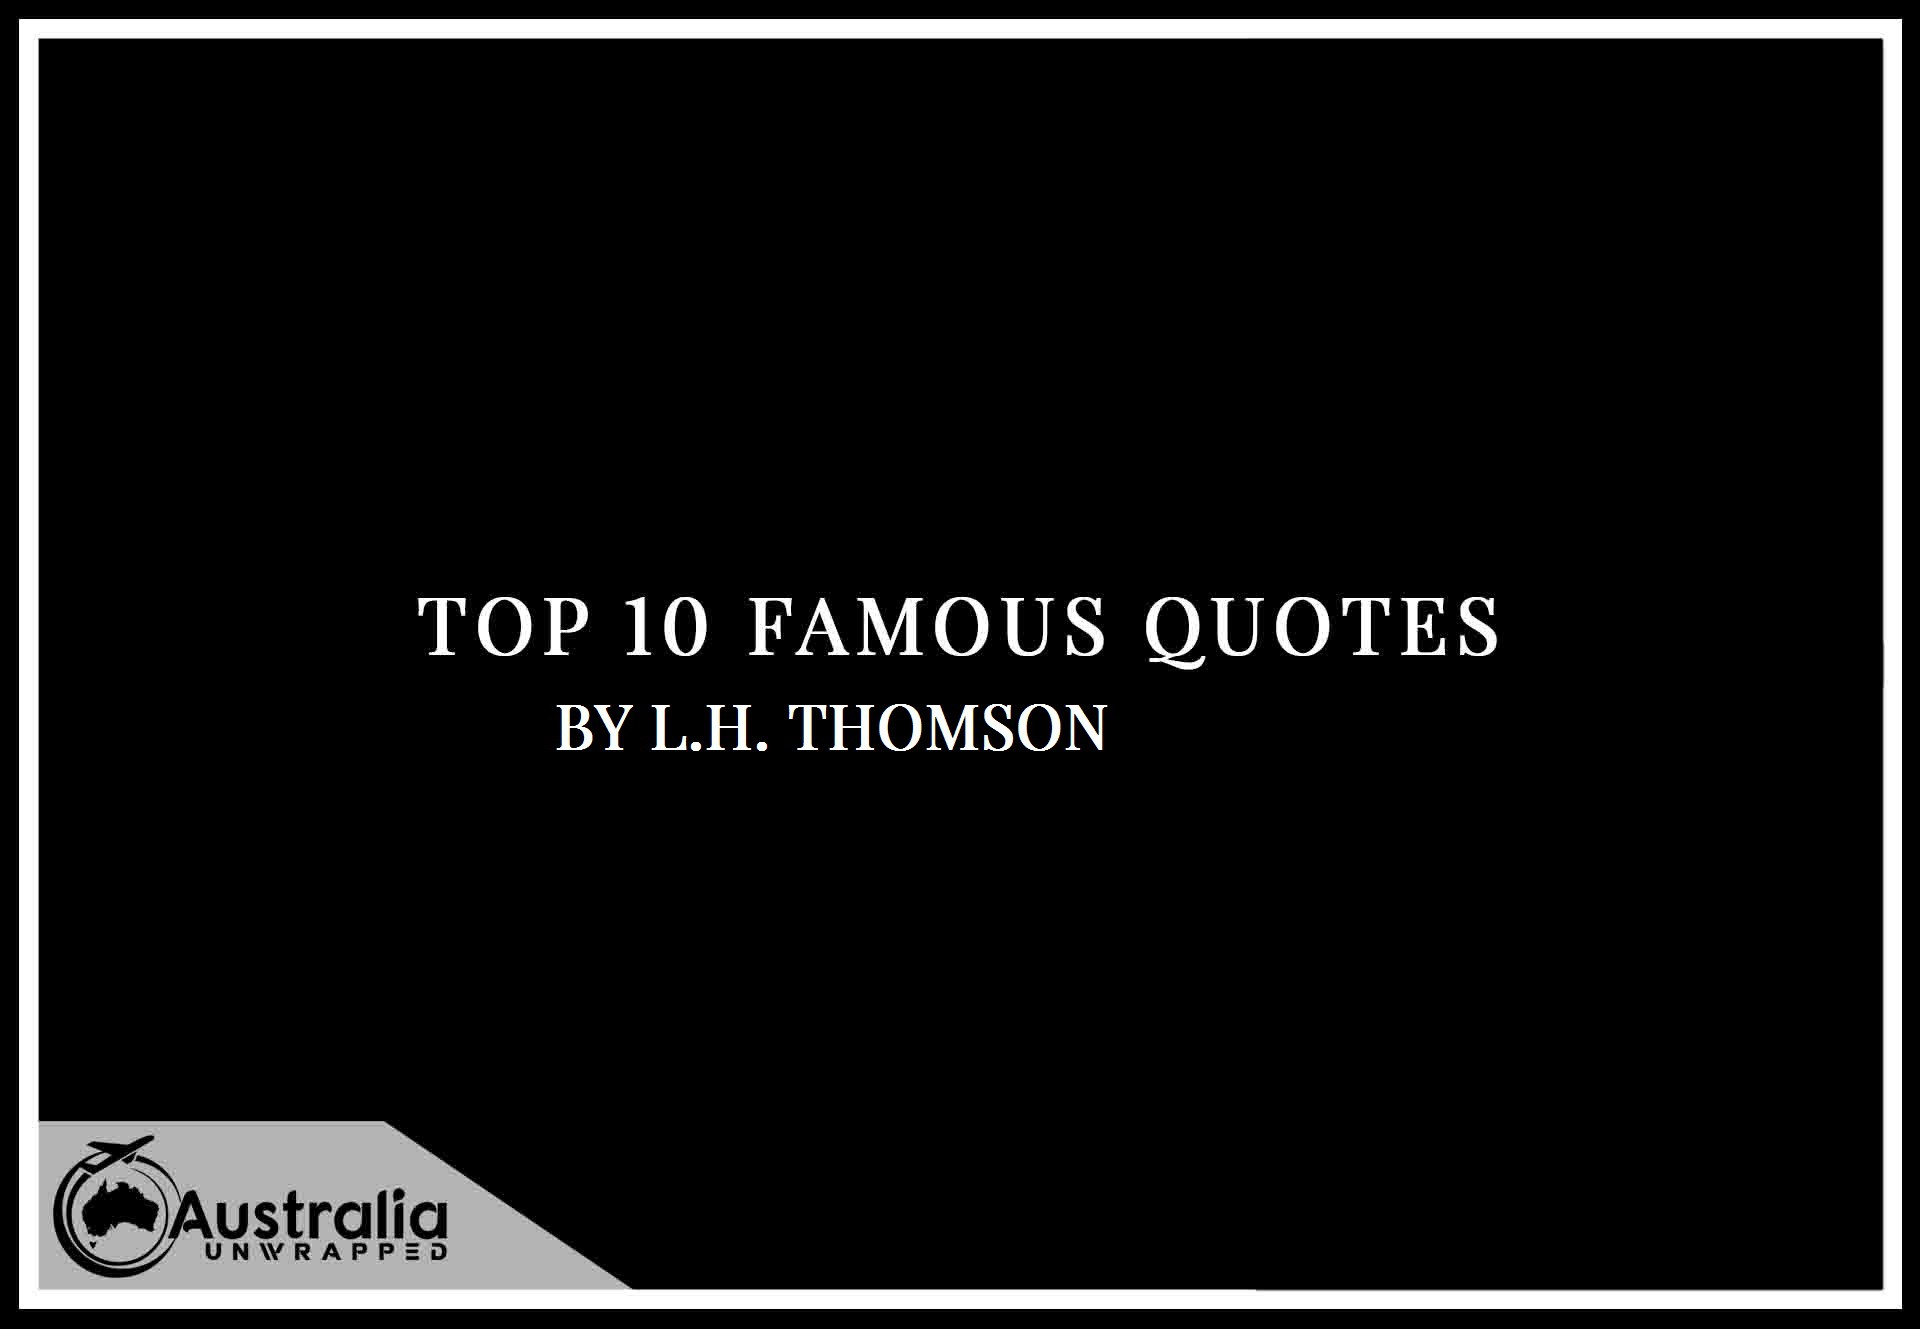 L.H. Thomson's Top 10 Popular and Famous Quotes